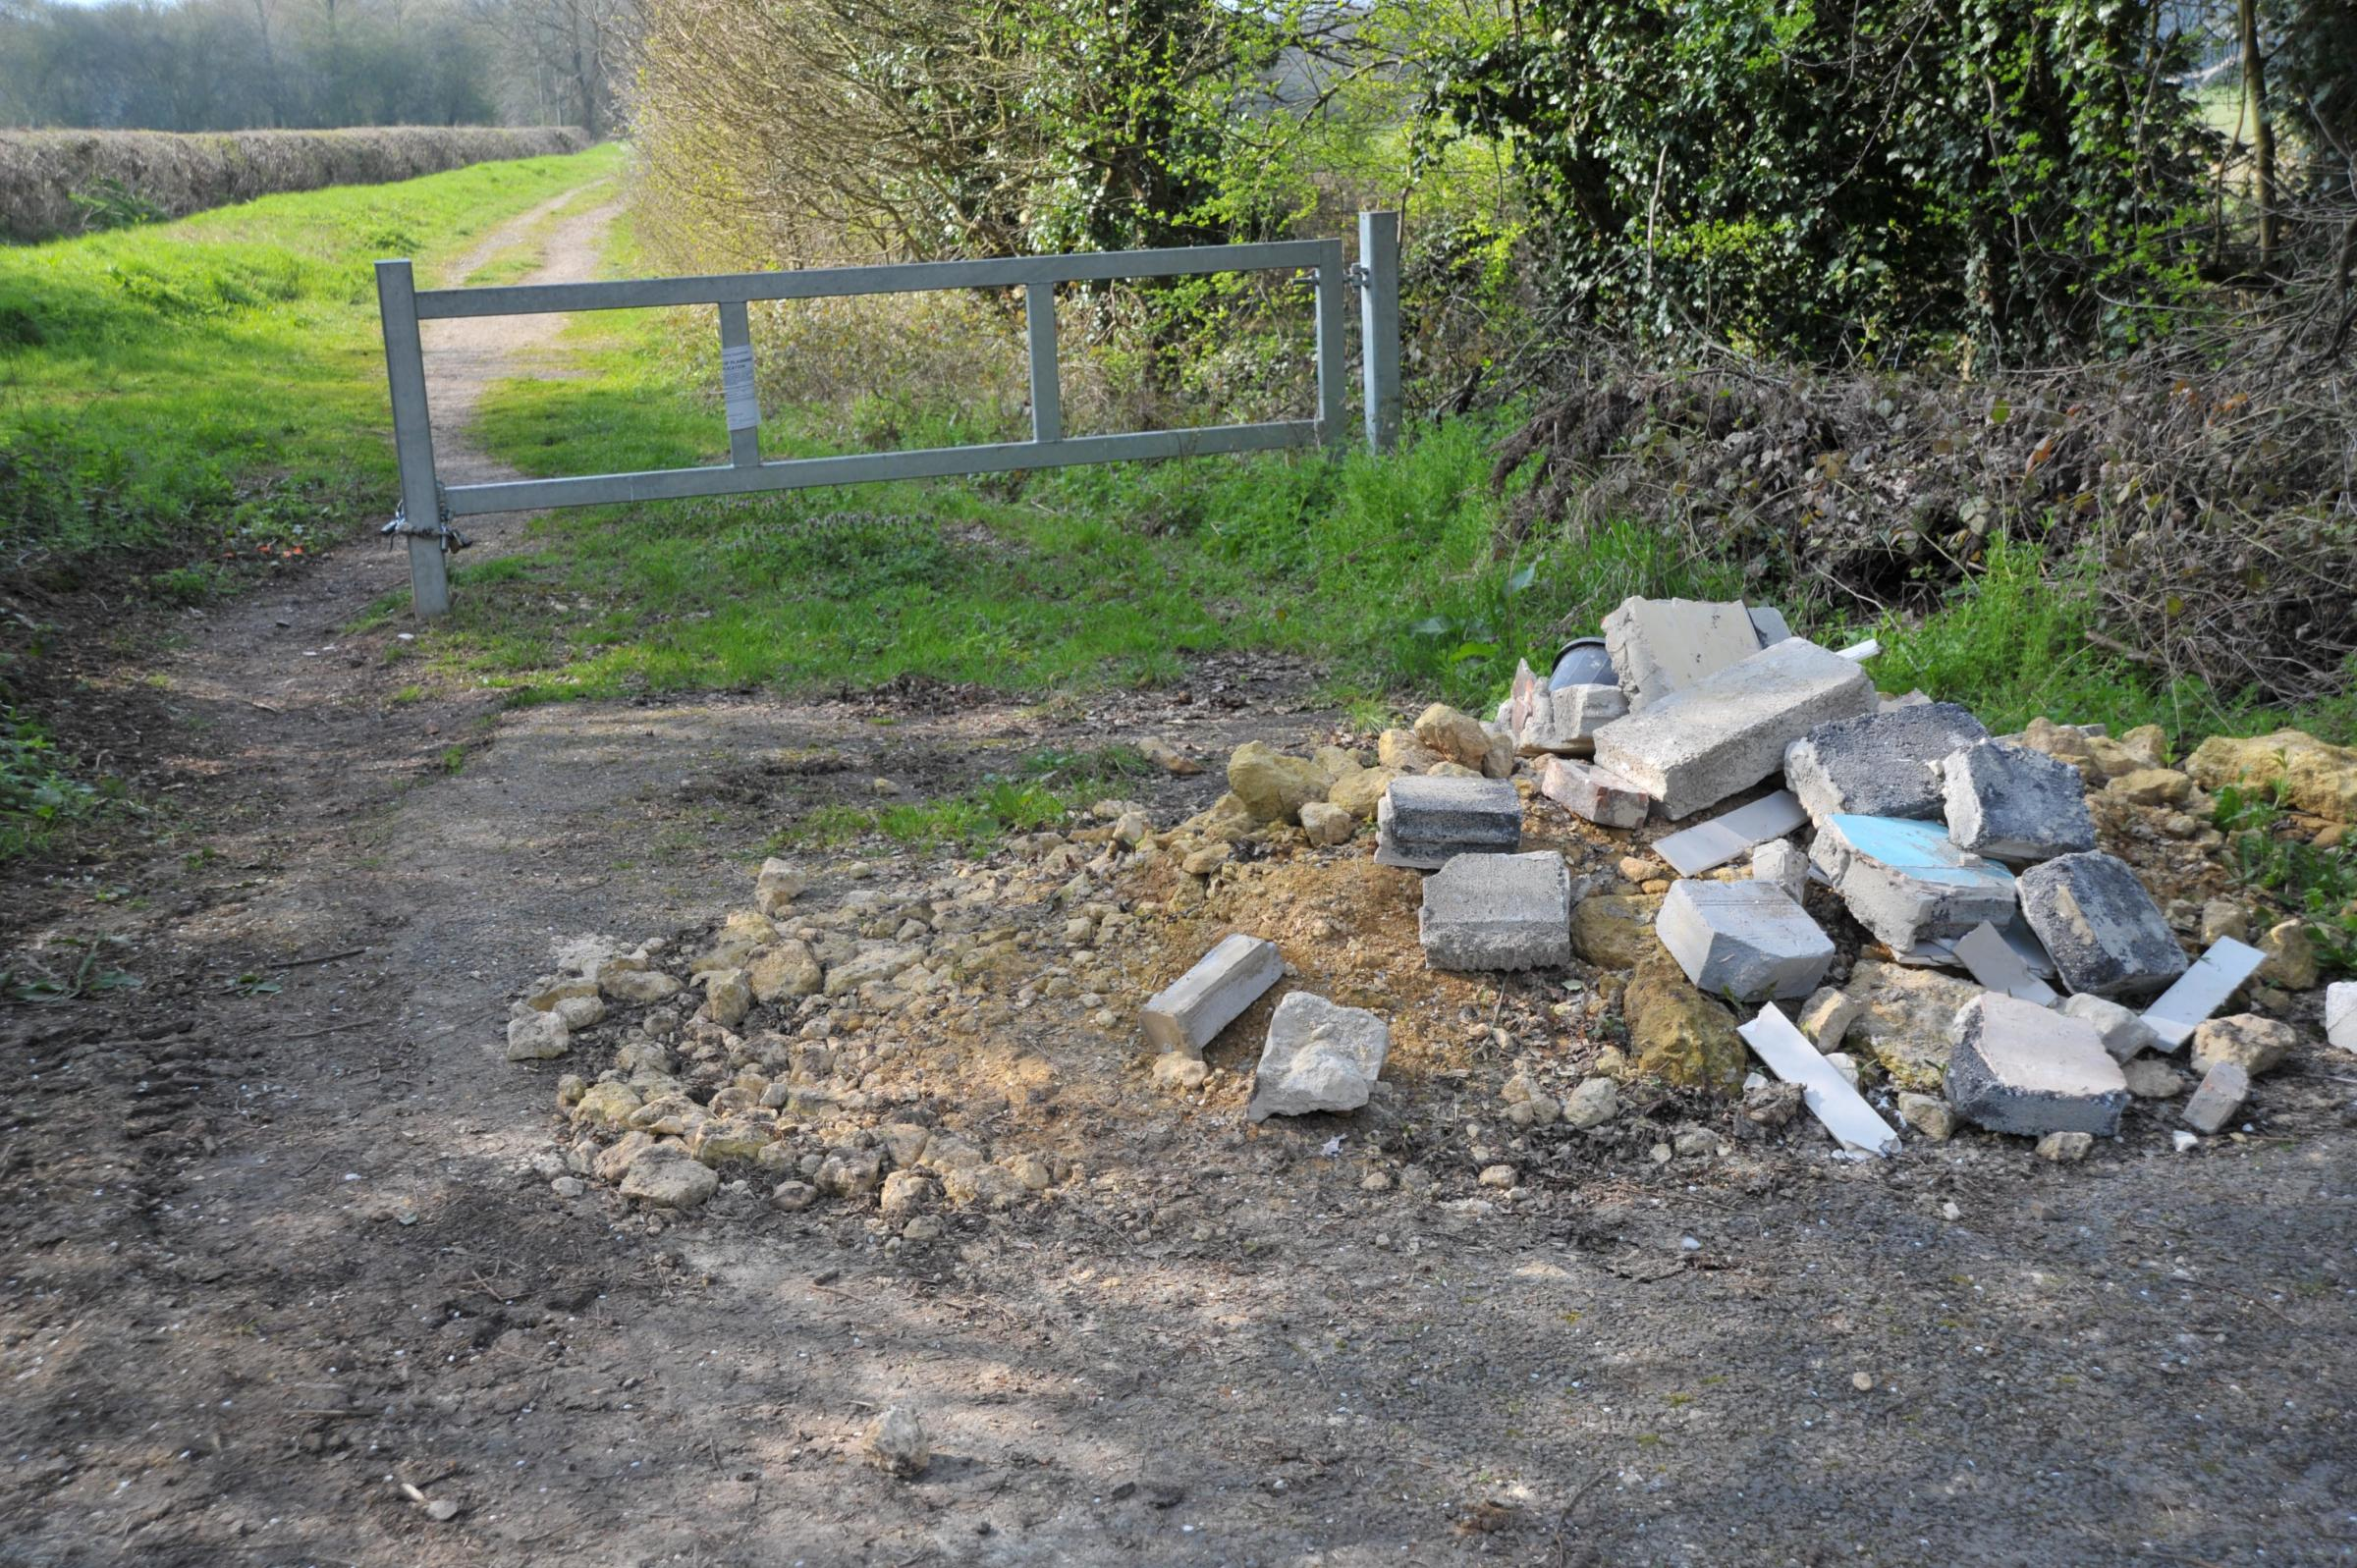 FlyTipping at South Marston..Pic - gv.Date 28/3/19.Pic by Dave Cox.